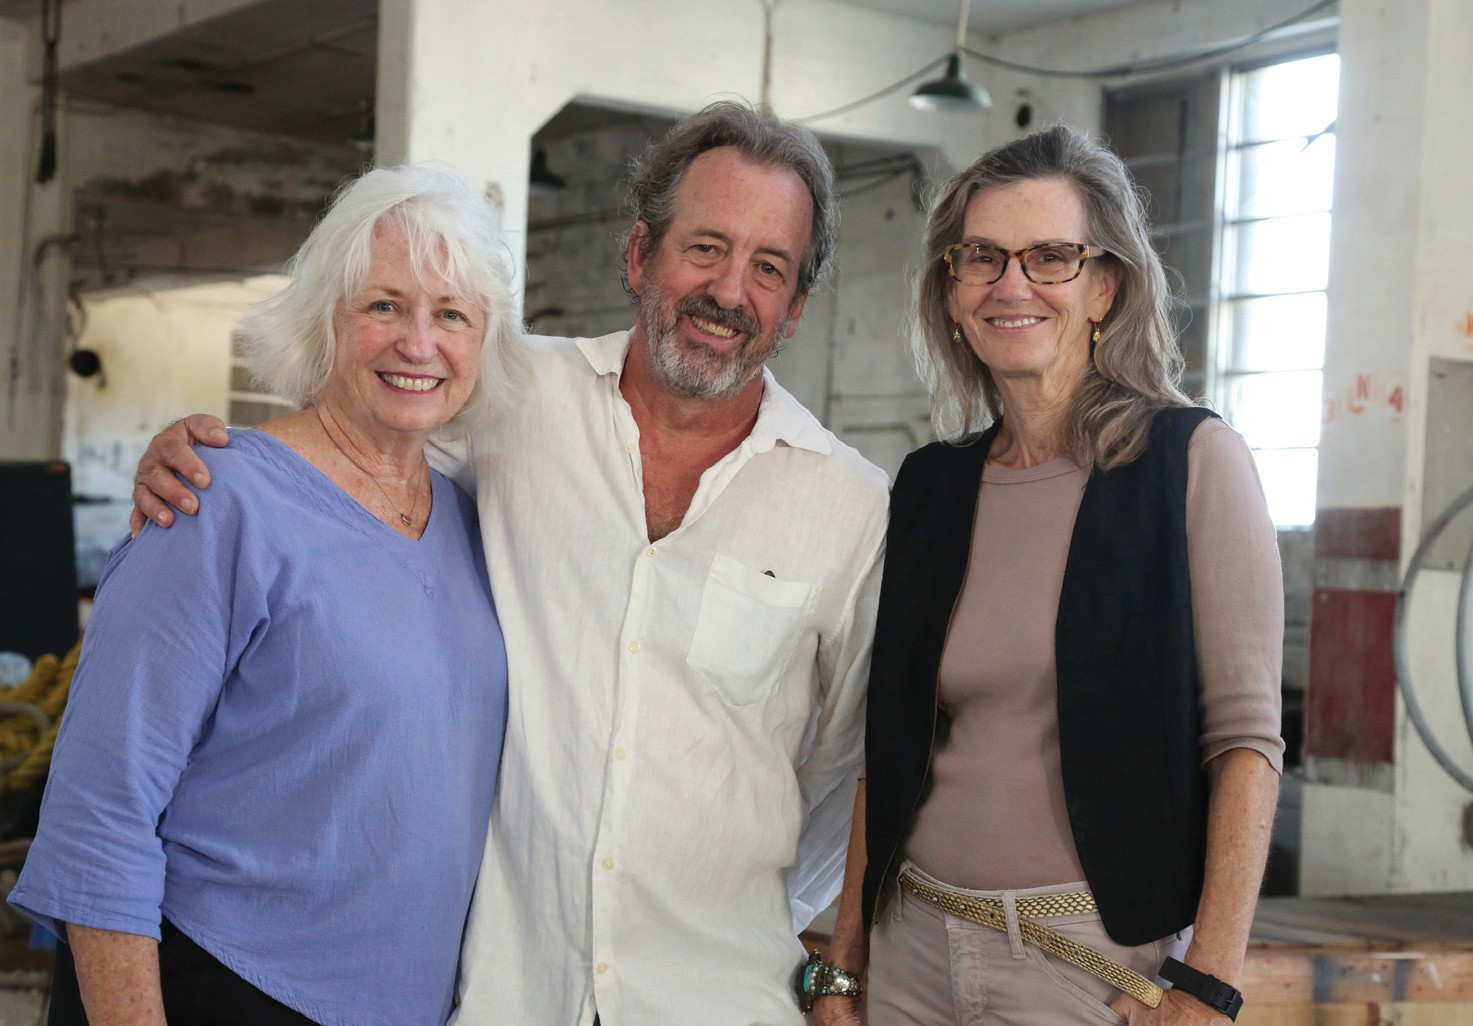 "Left to right, Judi Bradford, John Martini and Helen Harrison are three of the artists who rented studio spaces in decommissioned naval warehouses, machine-shops and residential facilities between 1974-1986, after the U.S. Navy abandoned its base in the present-day Truman Annex. Some of their works, along with others of the era, will be celebrated at the Key West Art & Historical Society exhibit, ""On the Waterfront: Truman Annex Artists,"" which opens Jan. 12 at 6 p.m. at the Custom House Museum."